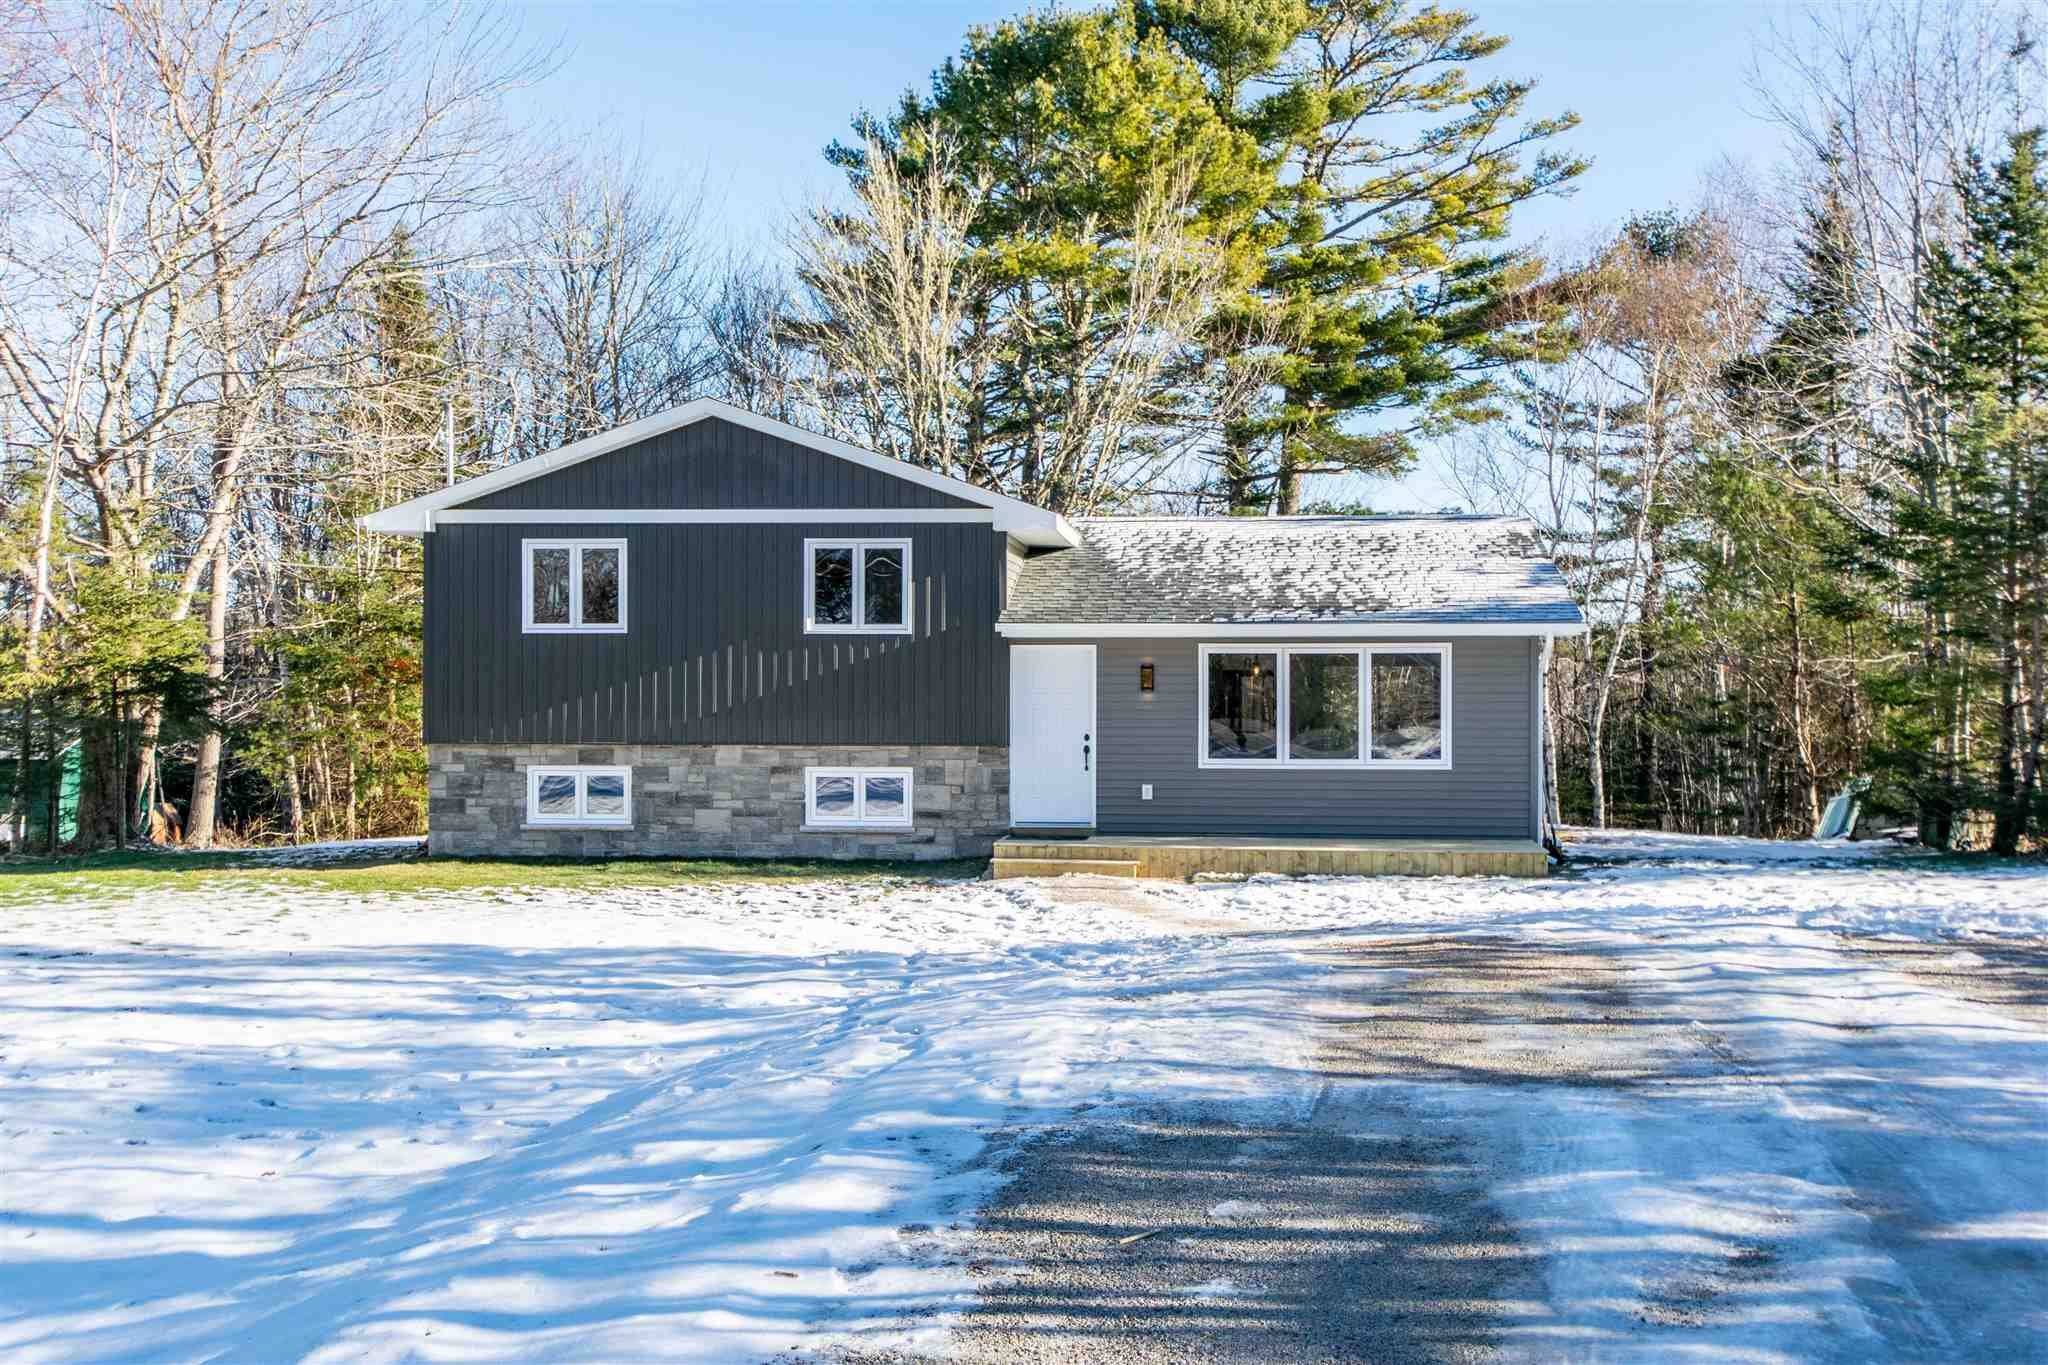 Main Photo: 95 Forest Village Road in Simms Settlement: 405-Lunenburg County Residential for sale (South Shore)  : MLS®# 202100463